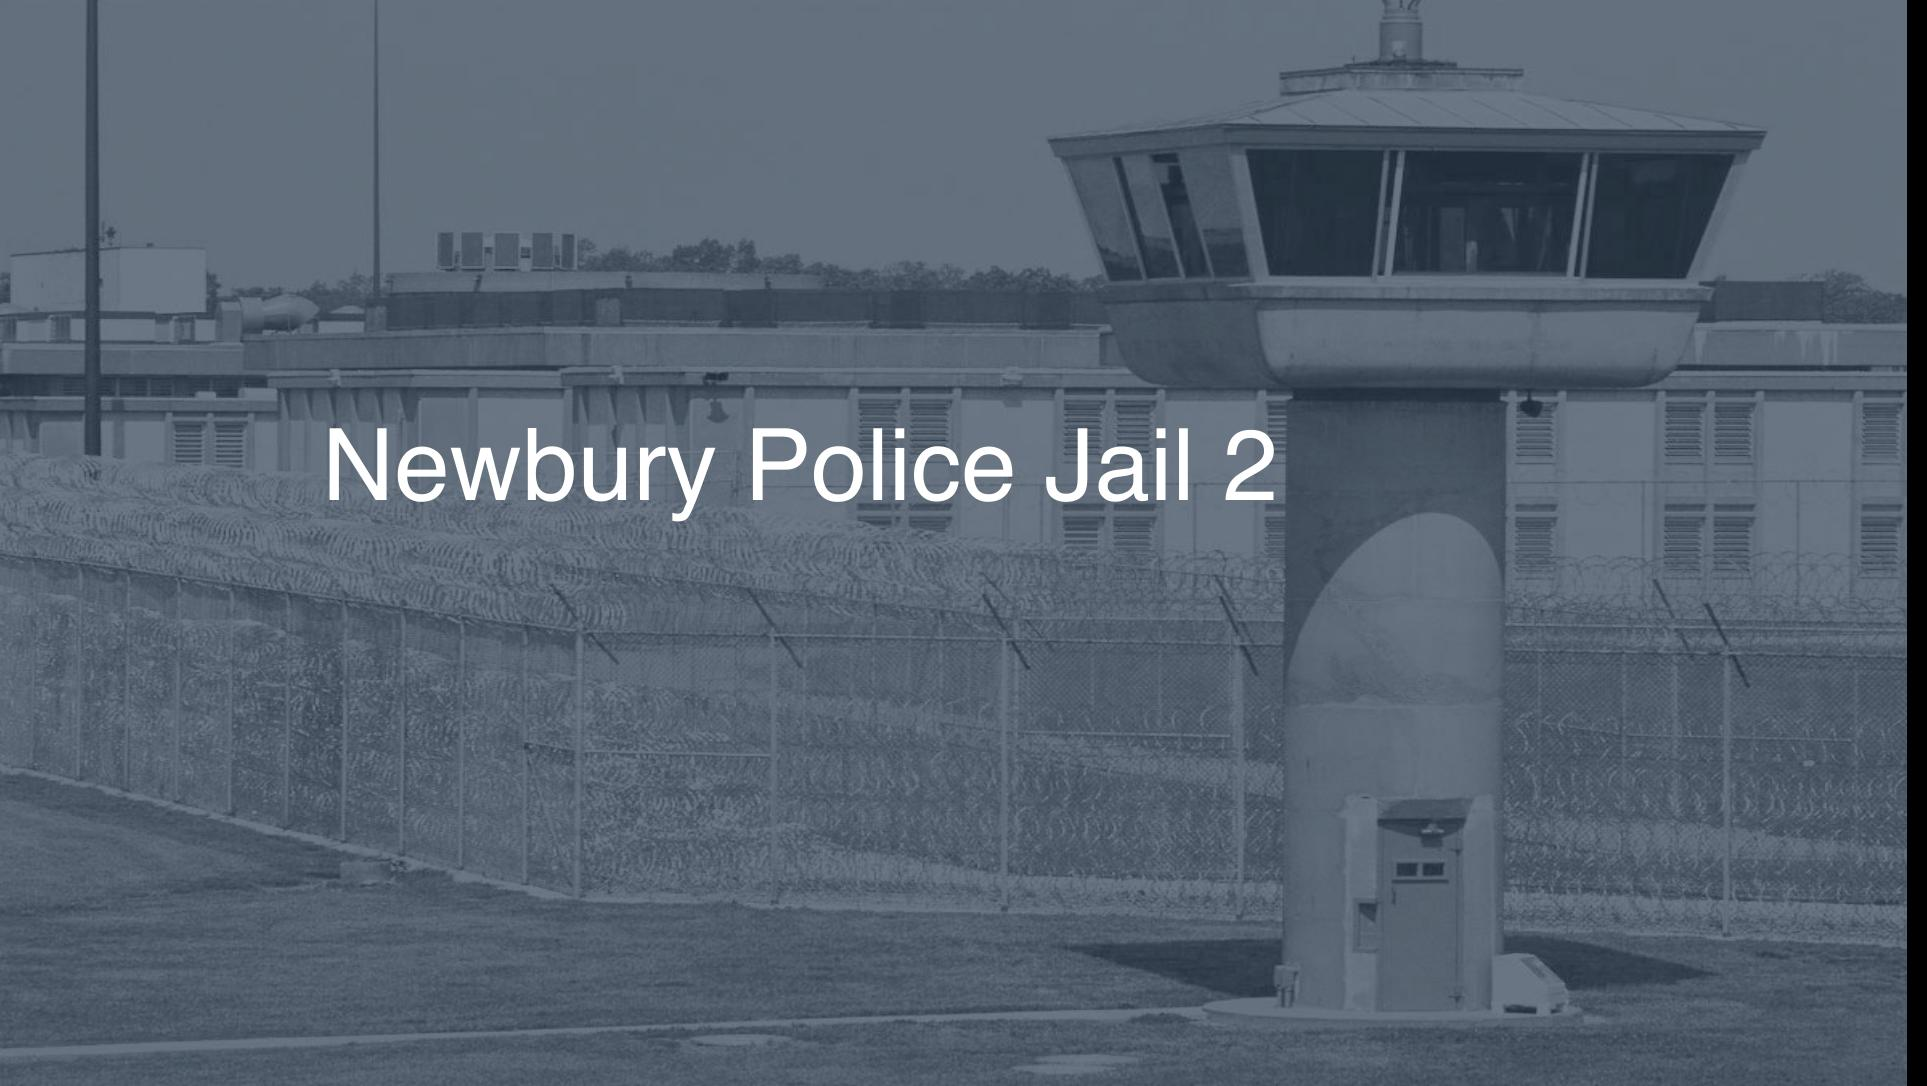 Newbury Police Jail correctional facility picture